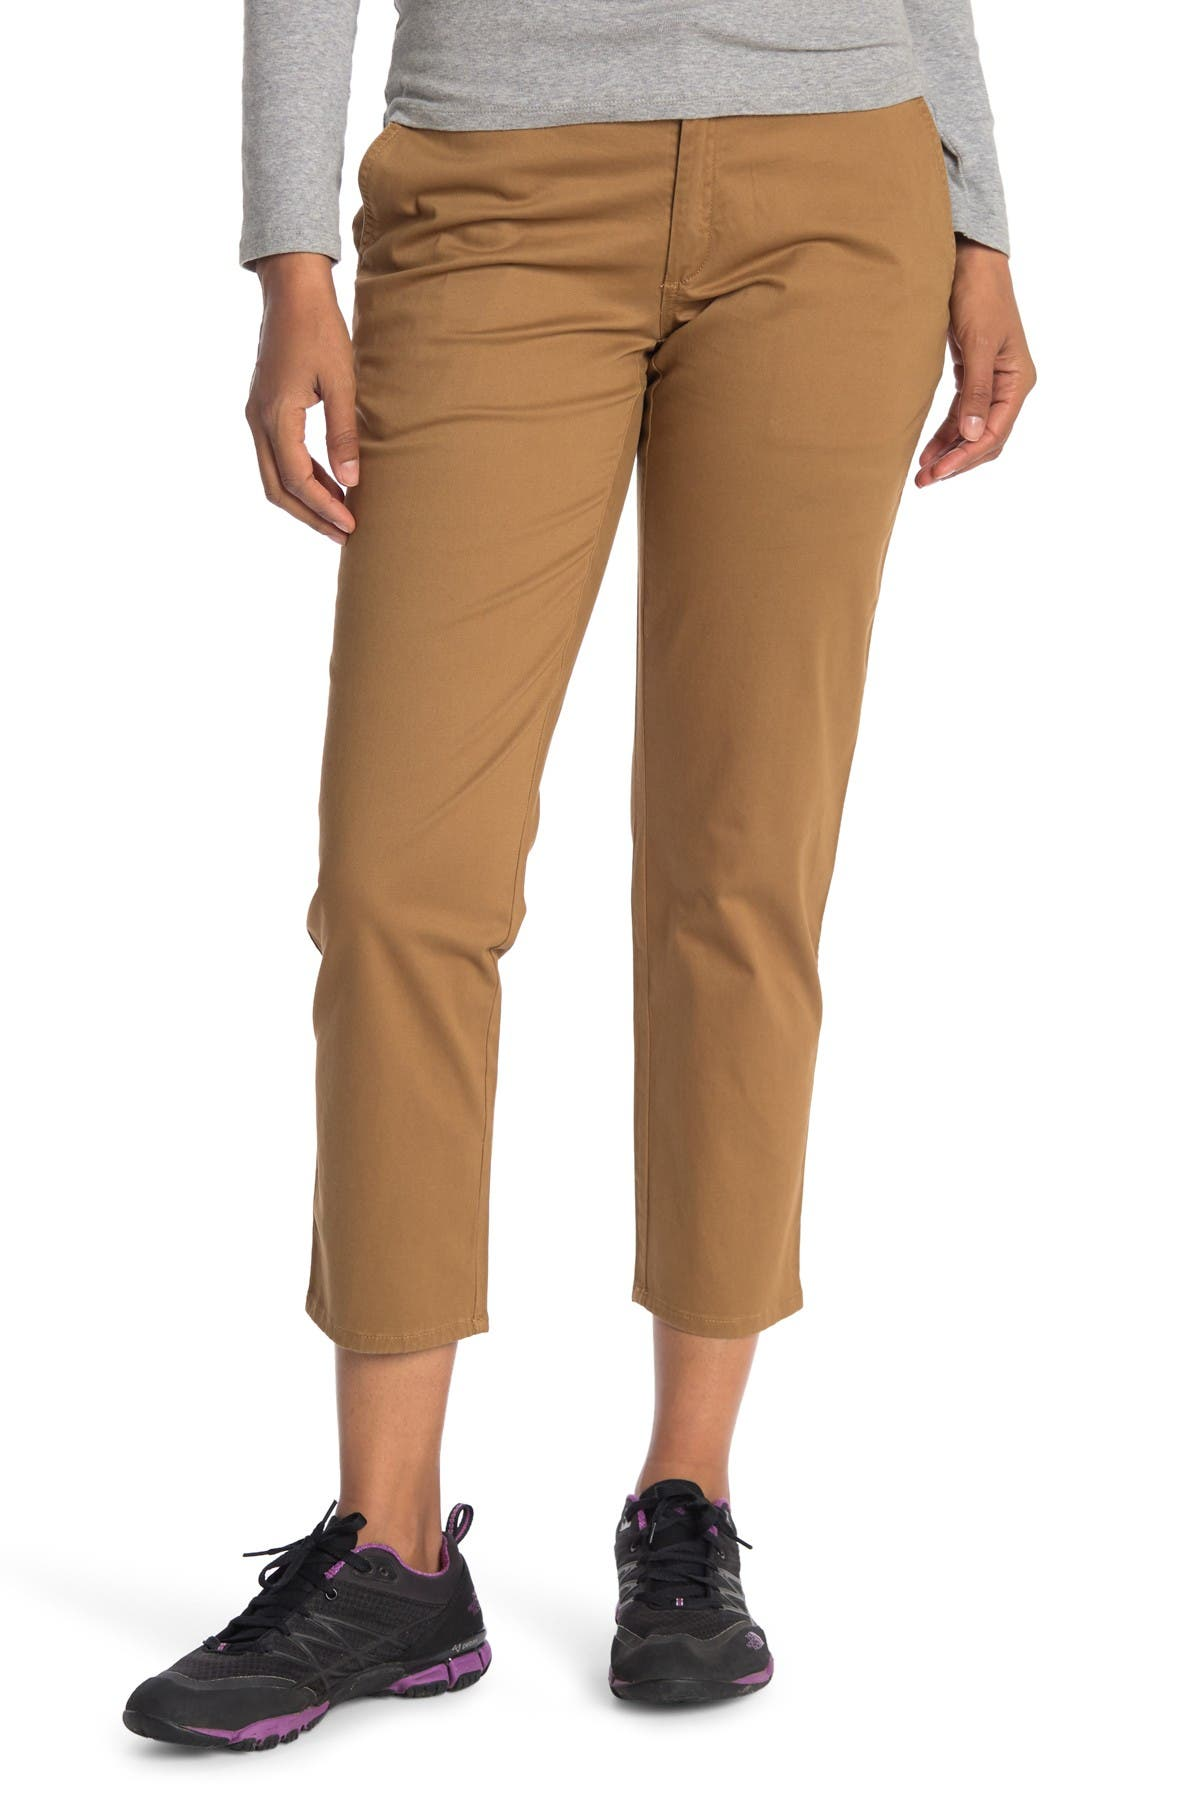 Image of The North Face Motion XD Ankle Crop Chino Pants